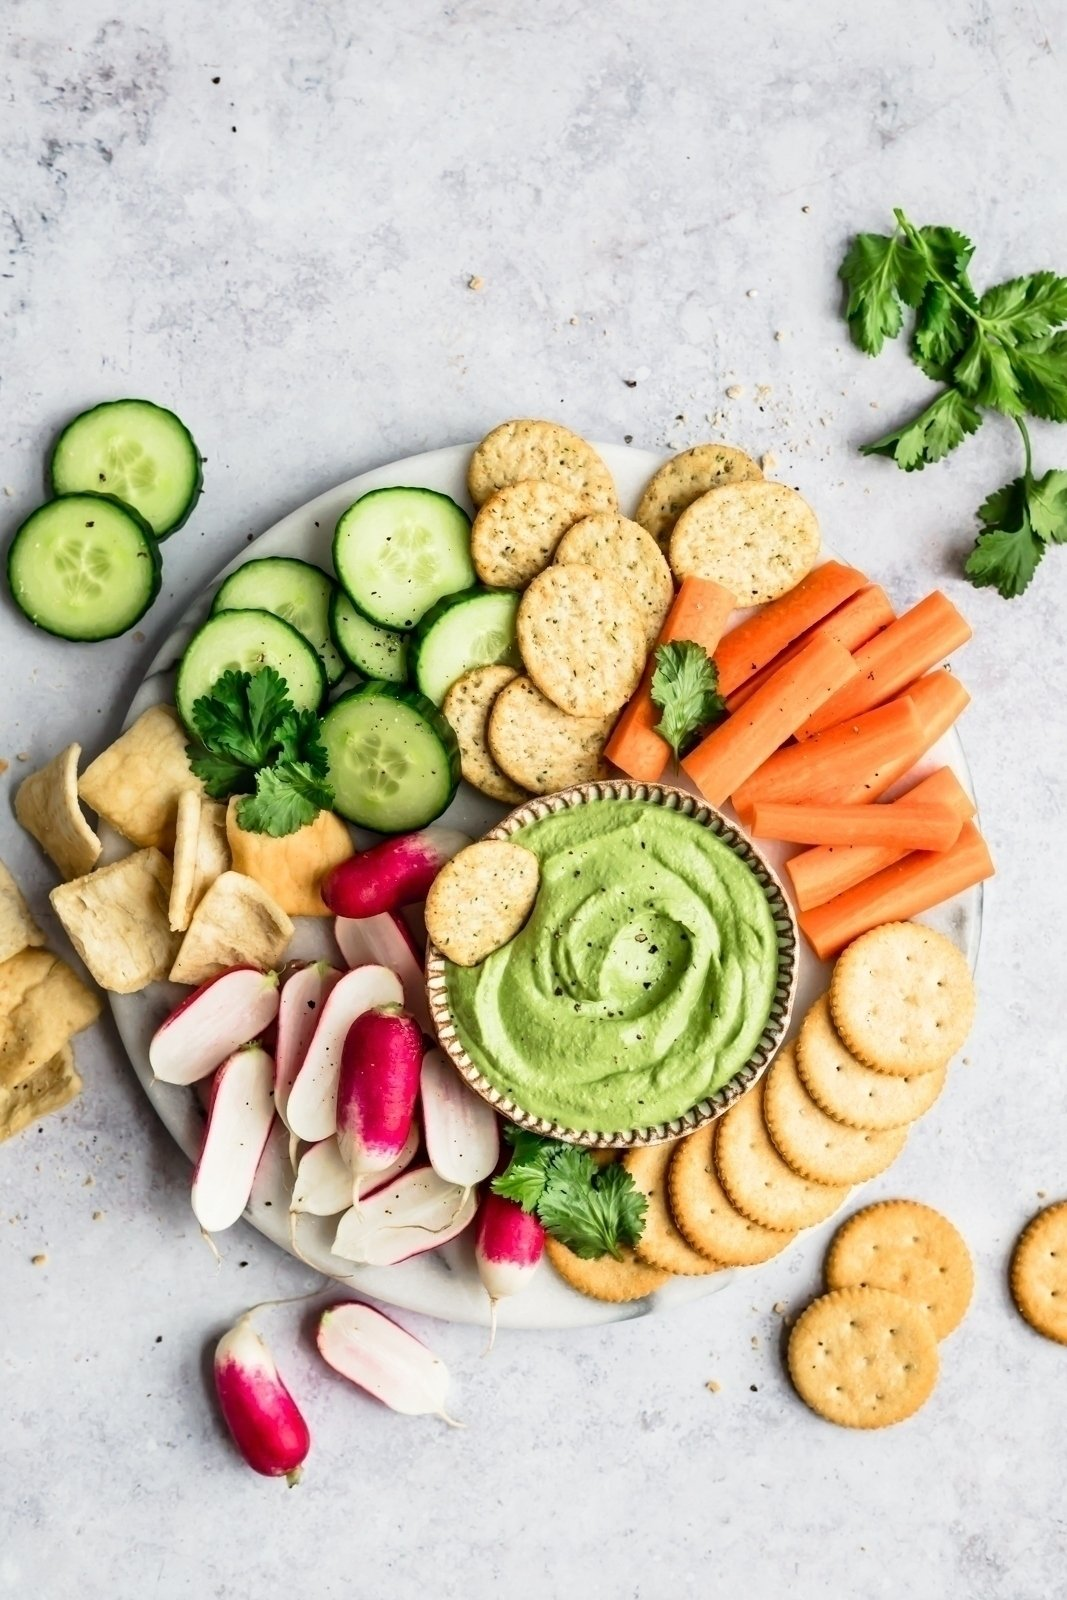 spicy green vegan cashew dip on a platter with veggies and crackers